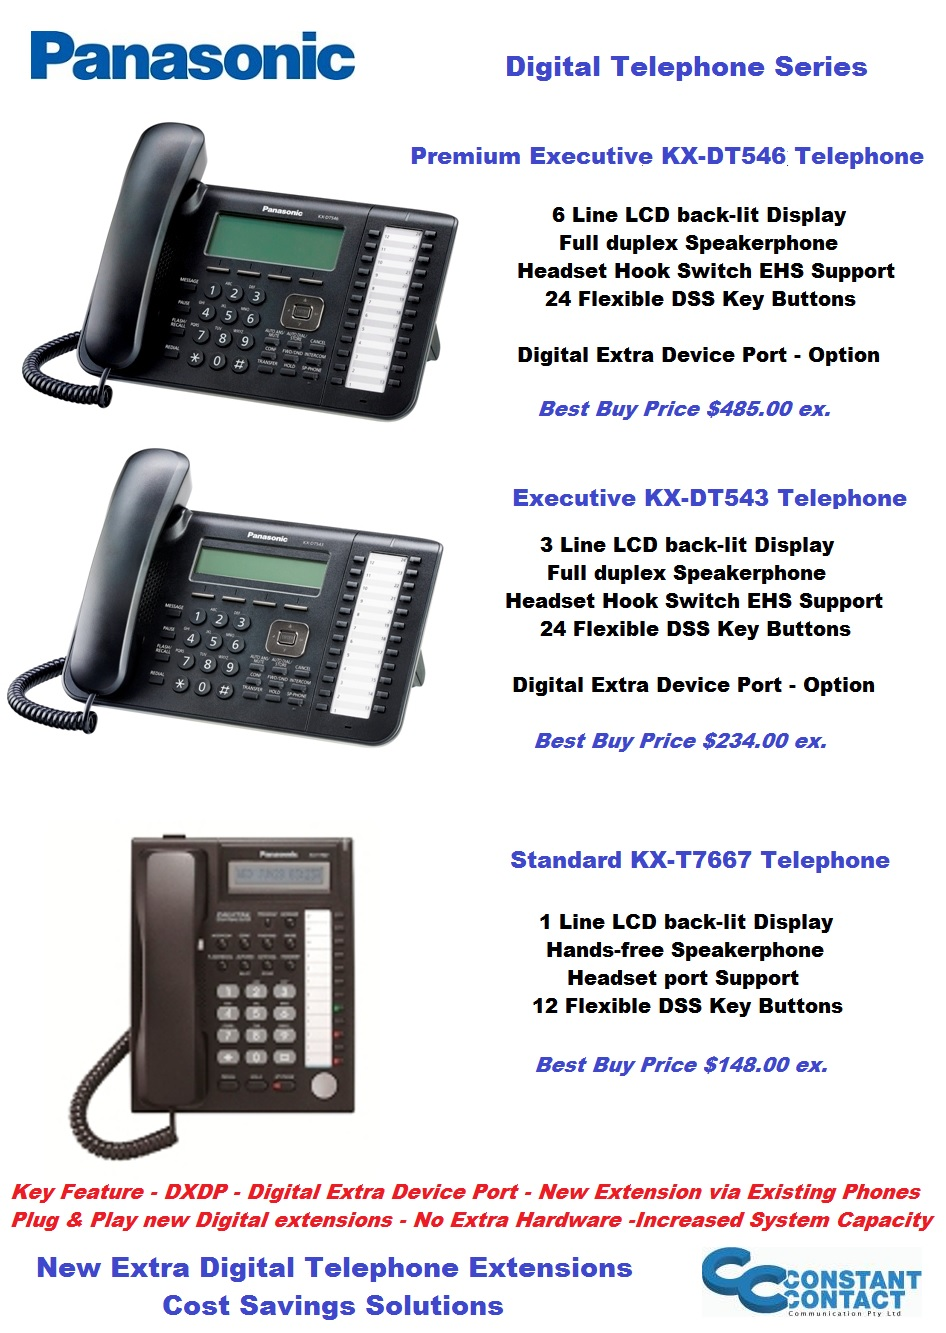 Panasonic Digital Telephones Best Buy Prices